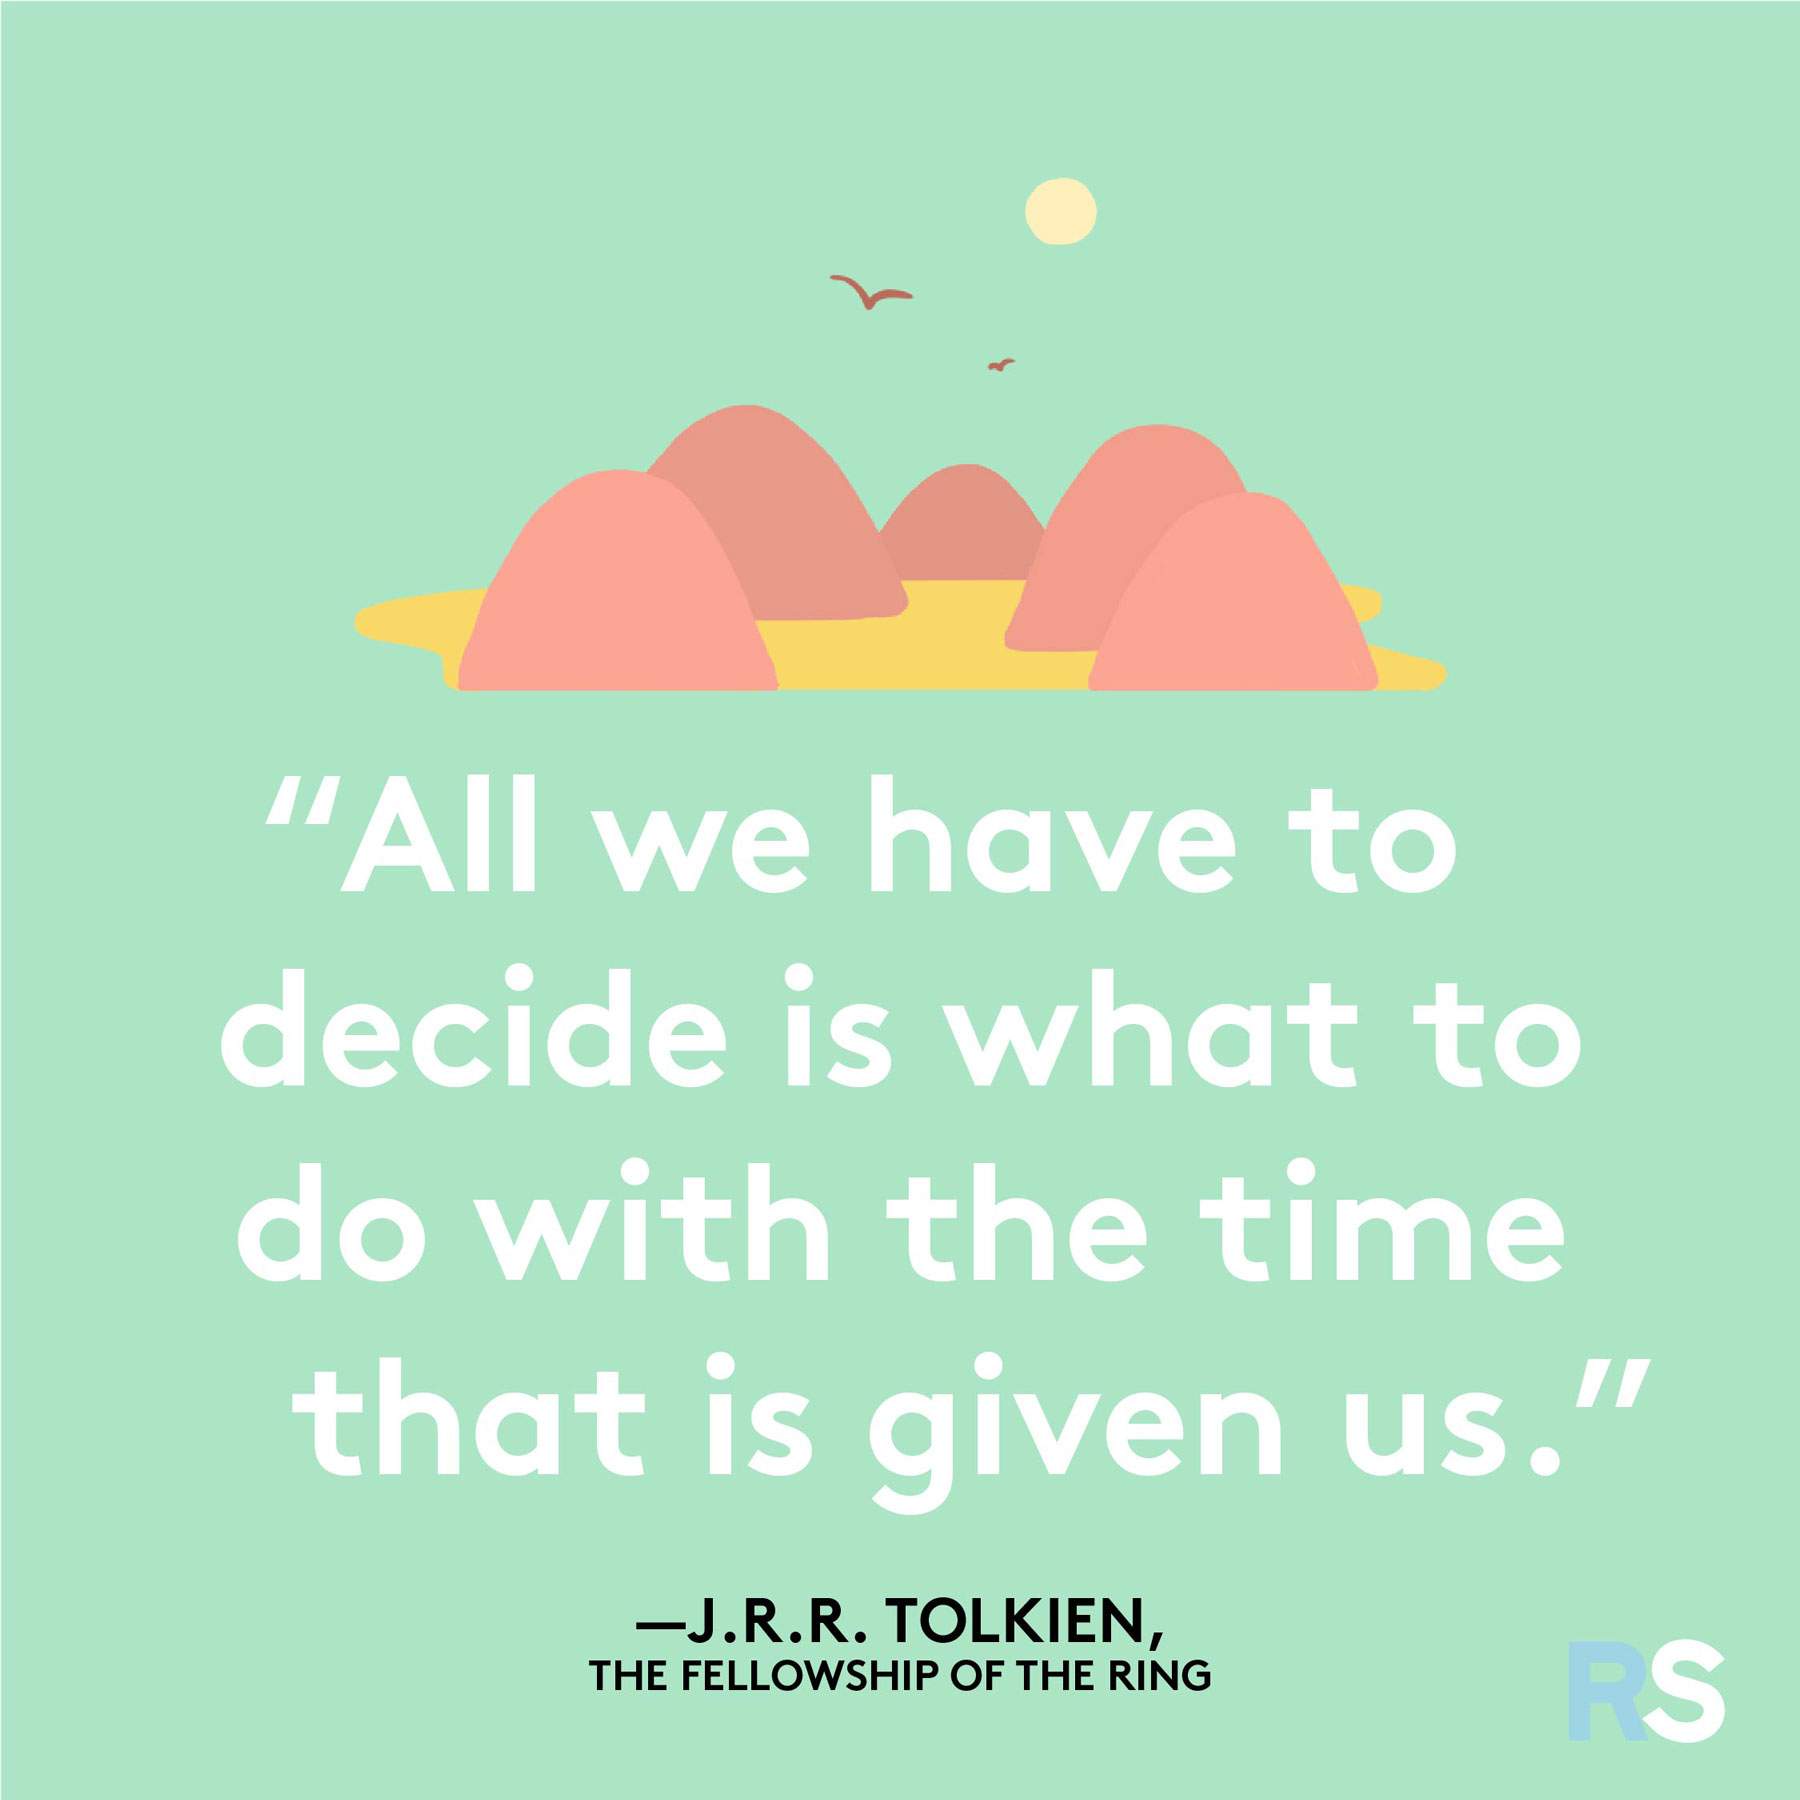 Positive motivating quotes, captions, messages – JRR Tolkein Lord of the Rings quote